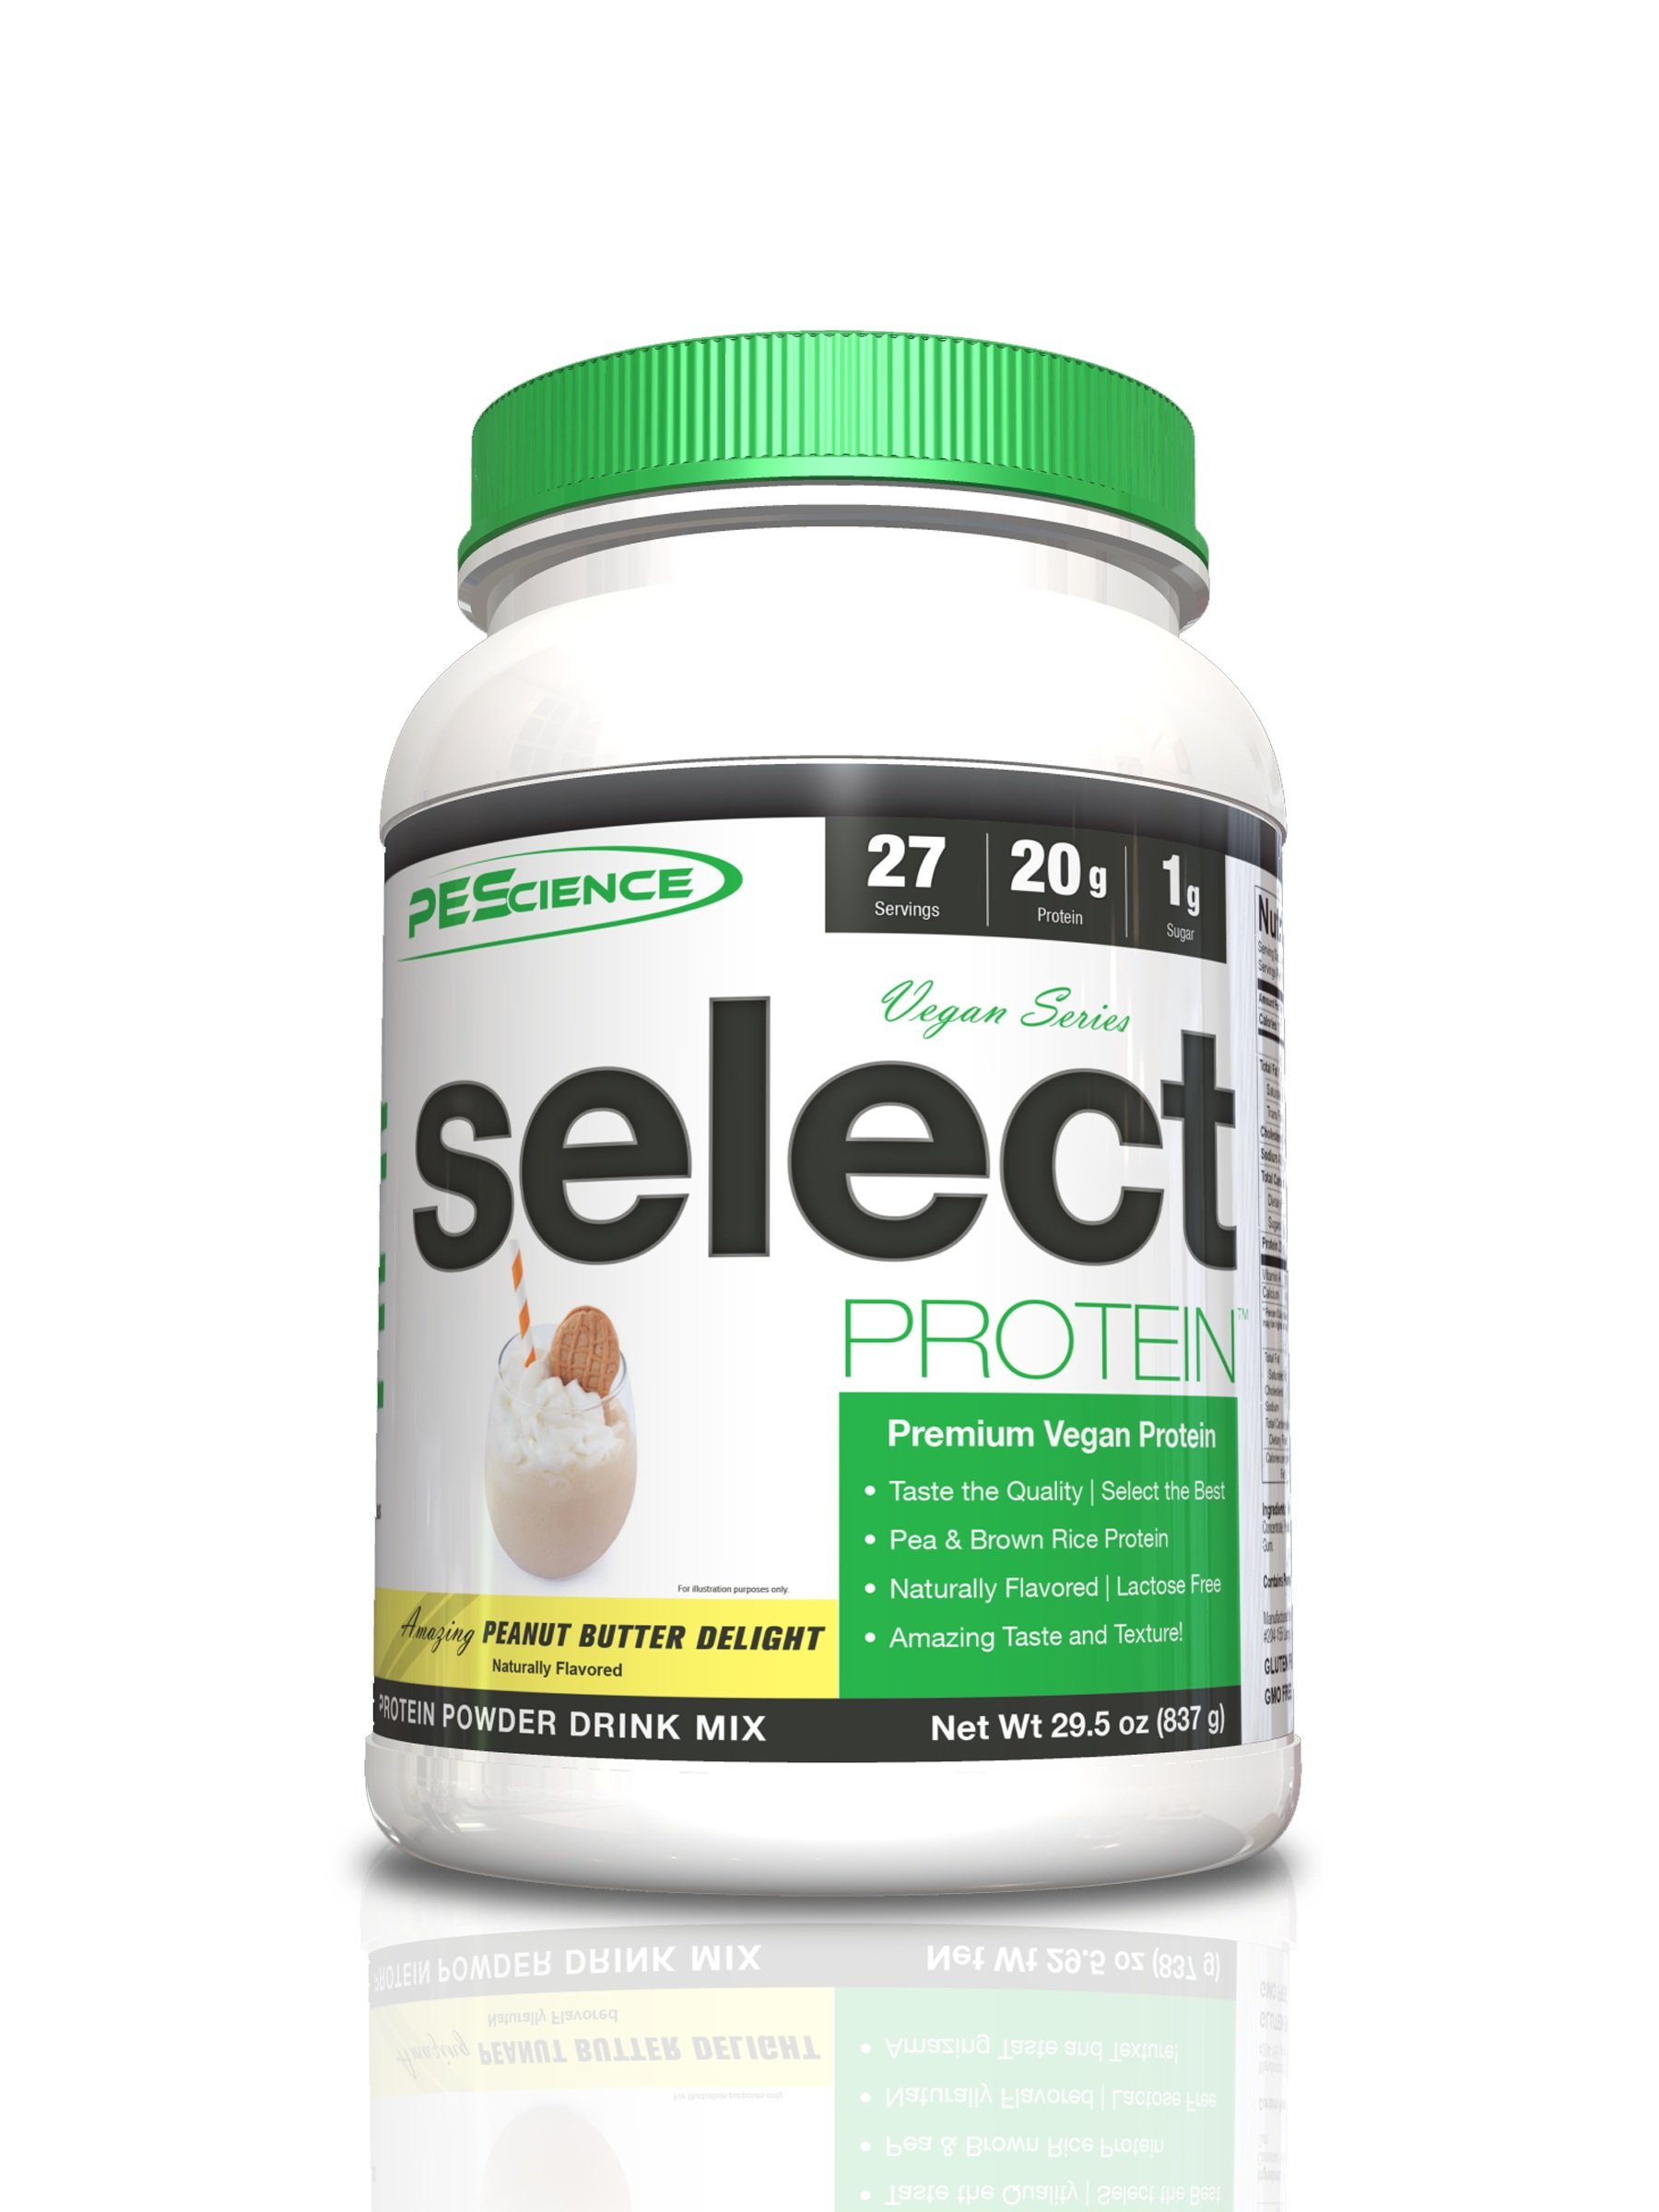 PEScience Select Vegan Protein, Peanut Butter Delight, 27 Serving, Premium Pea and Brown Rice Blend